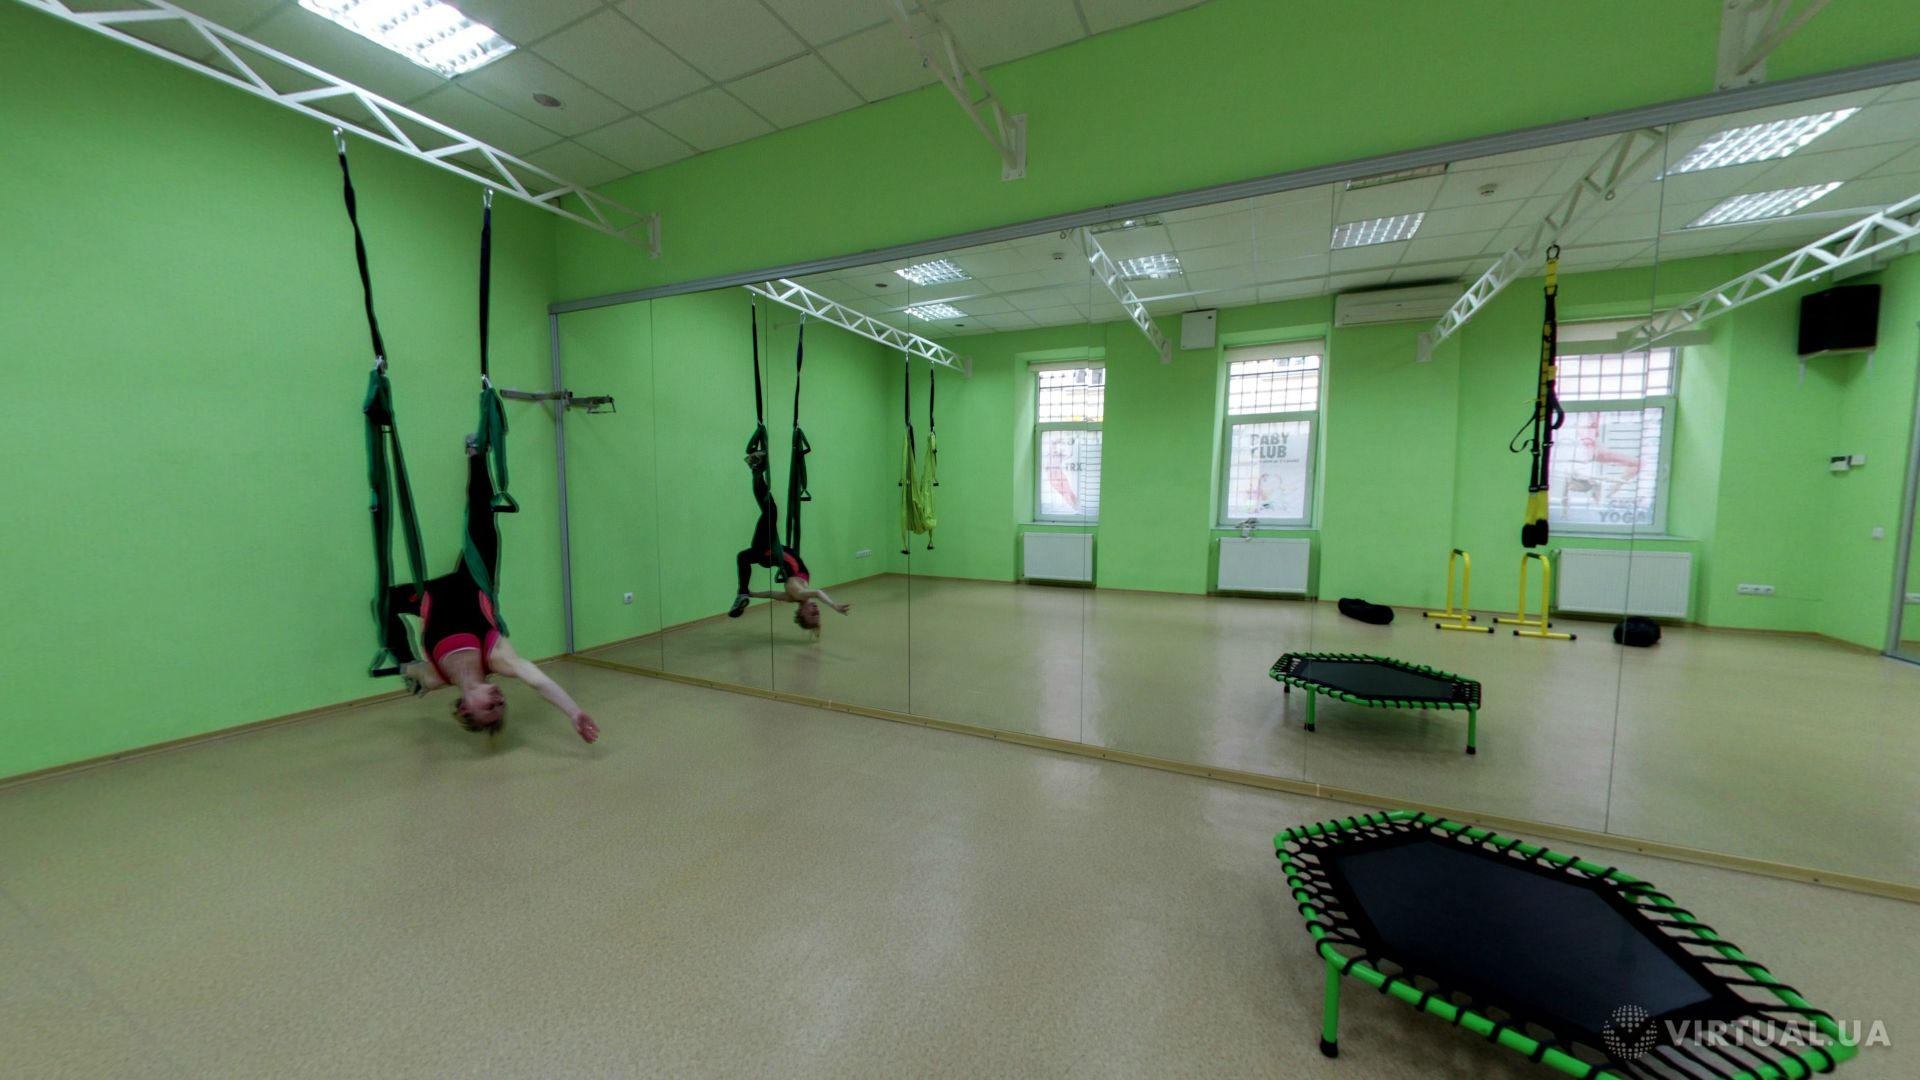 Kiwi-Fitness Sports club on the Stefanyka street, photo